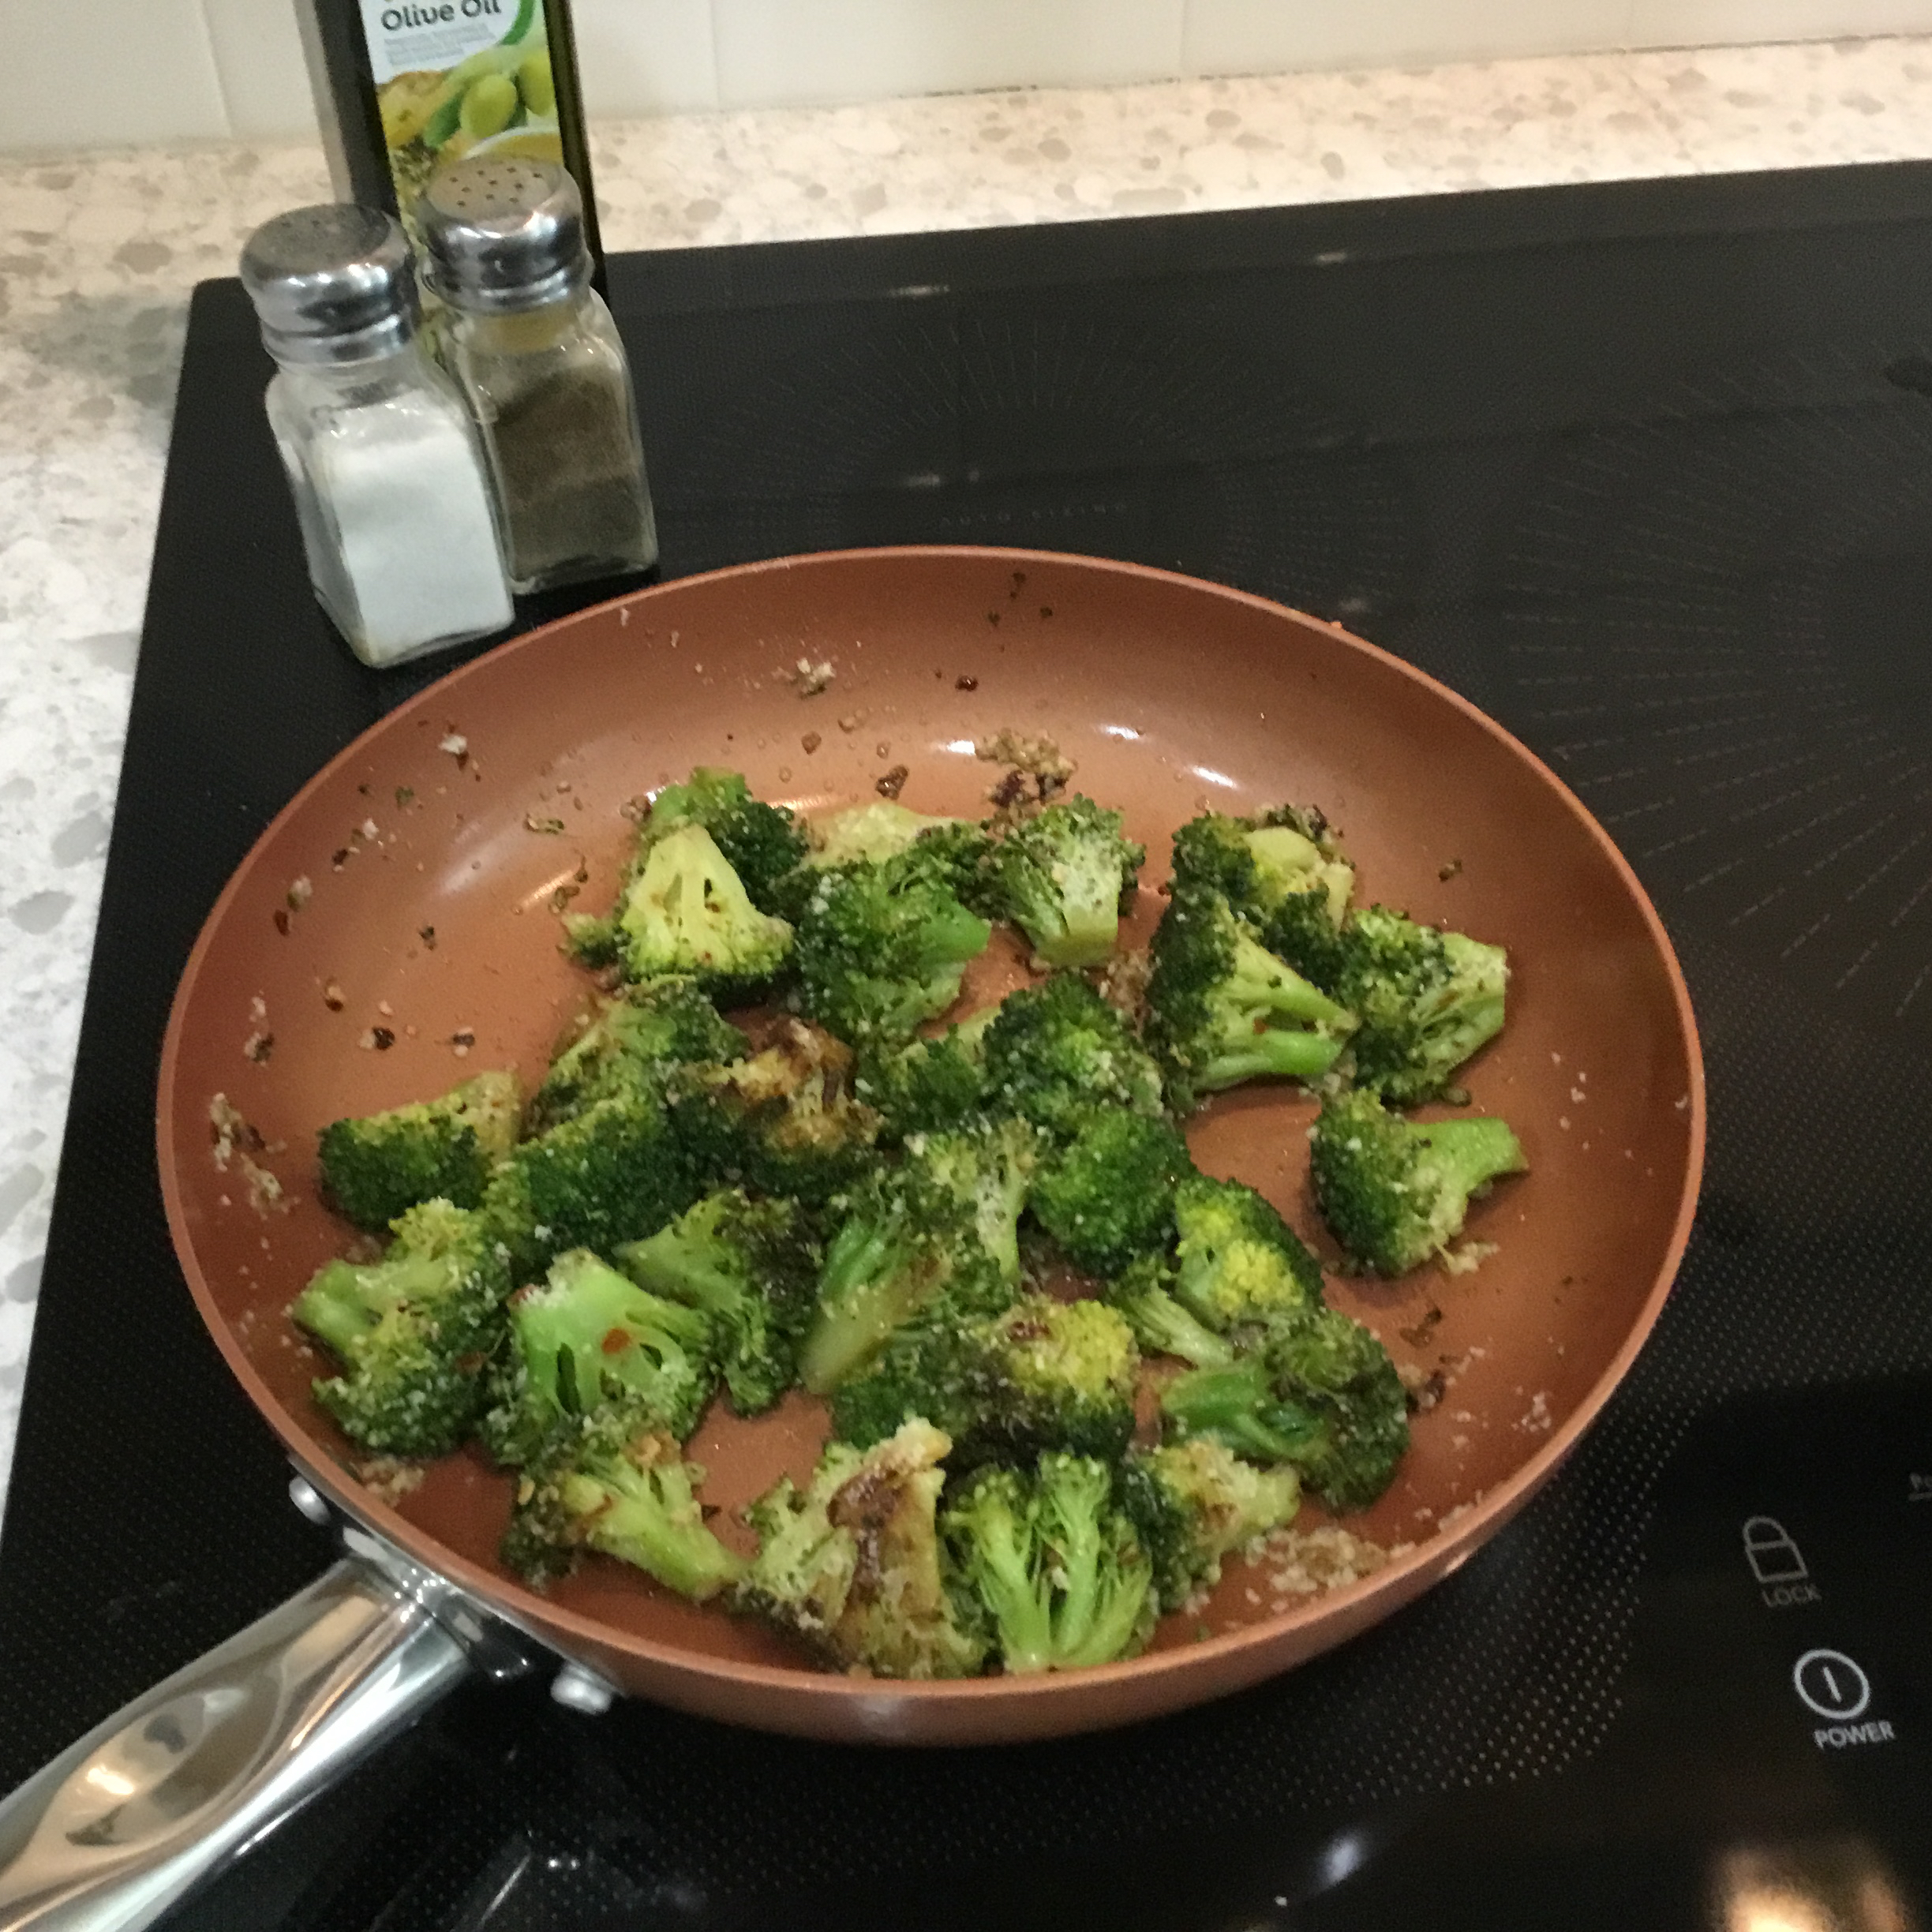 Brilliant Sauteed Broccoli she K